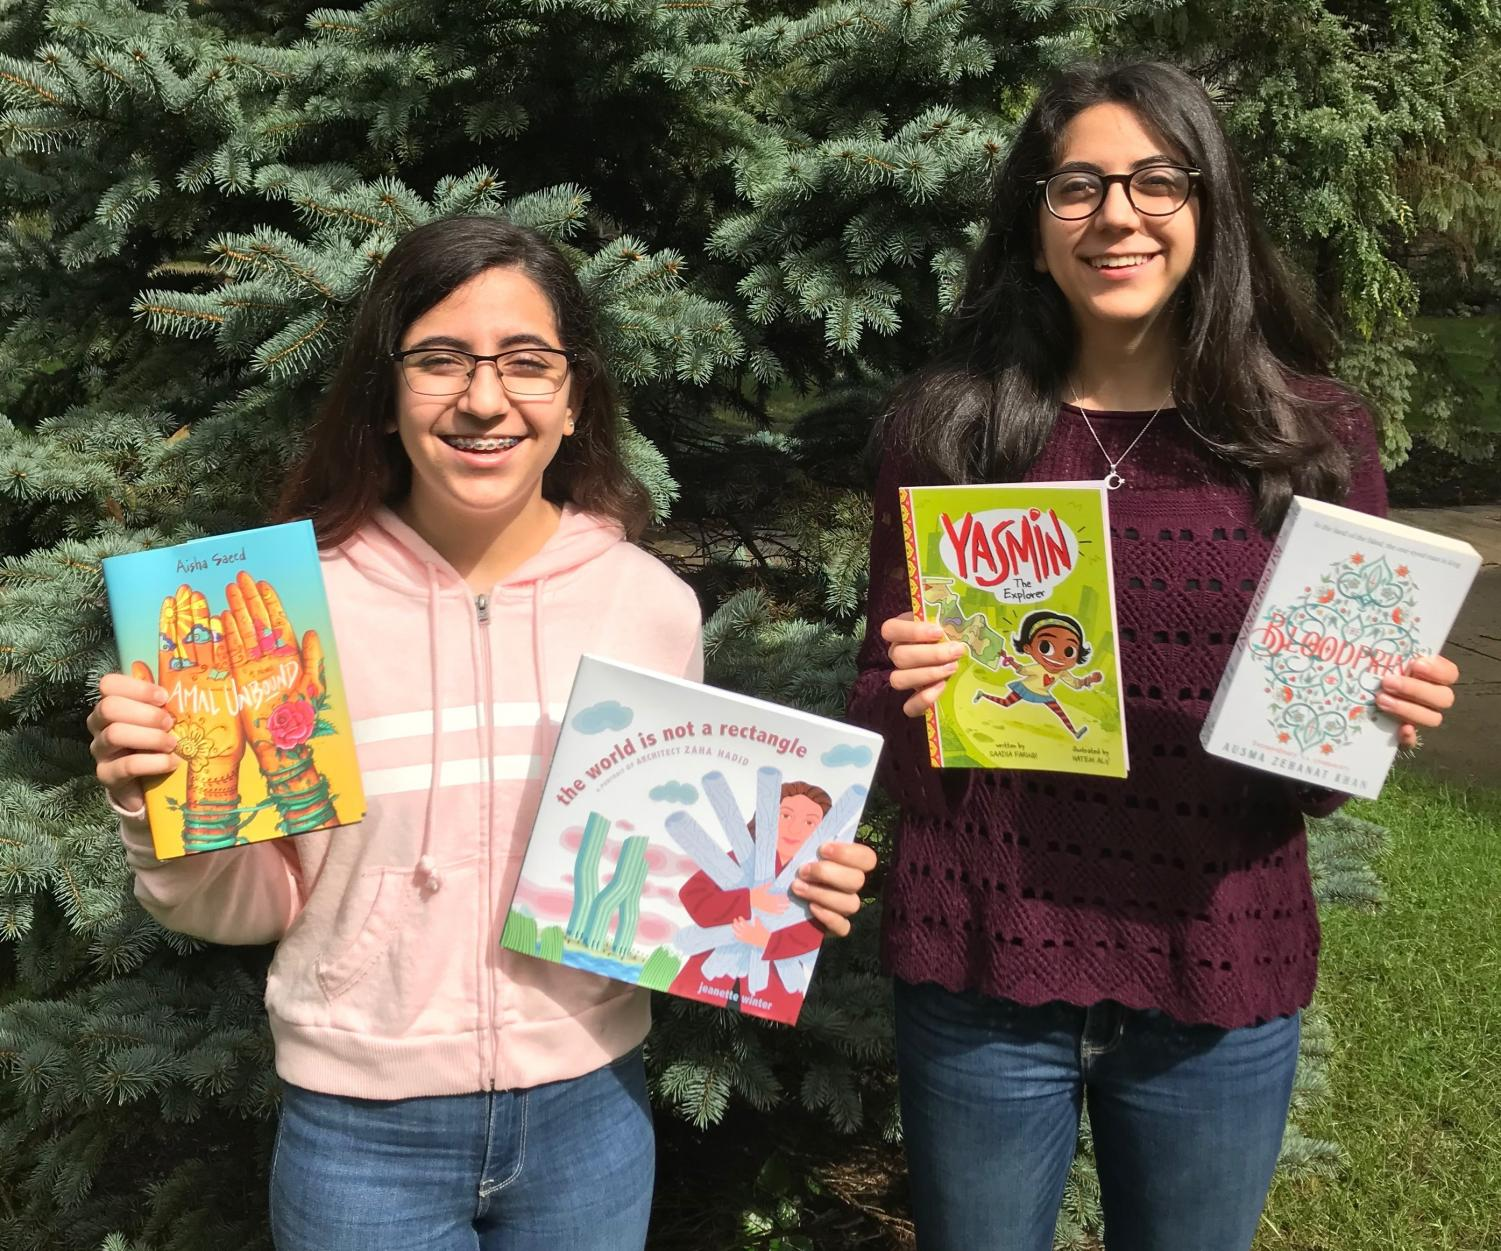 Mena (left) and Zena Nasiri (right) holding some of the books they donated.